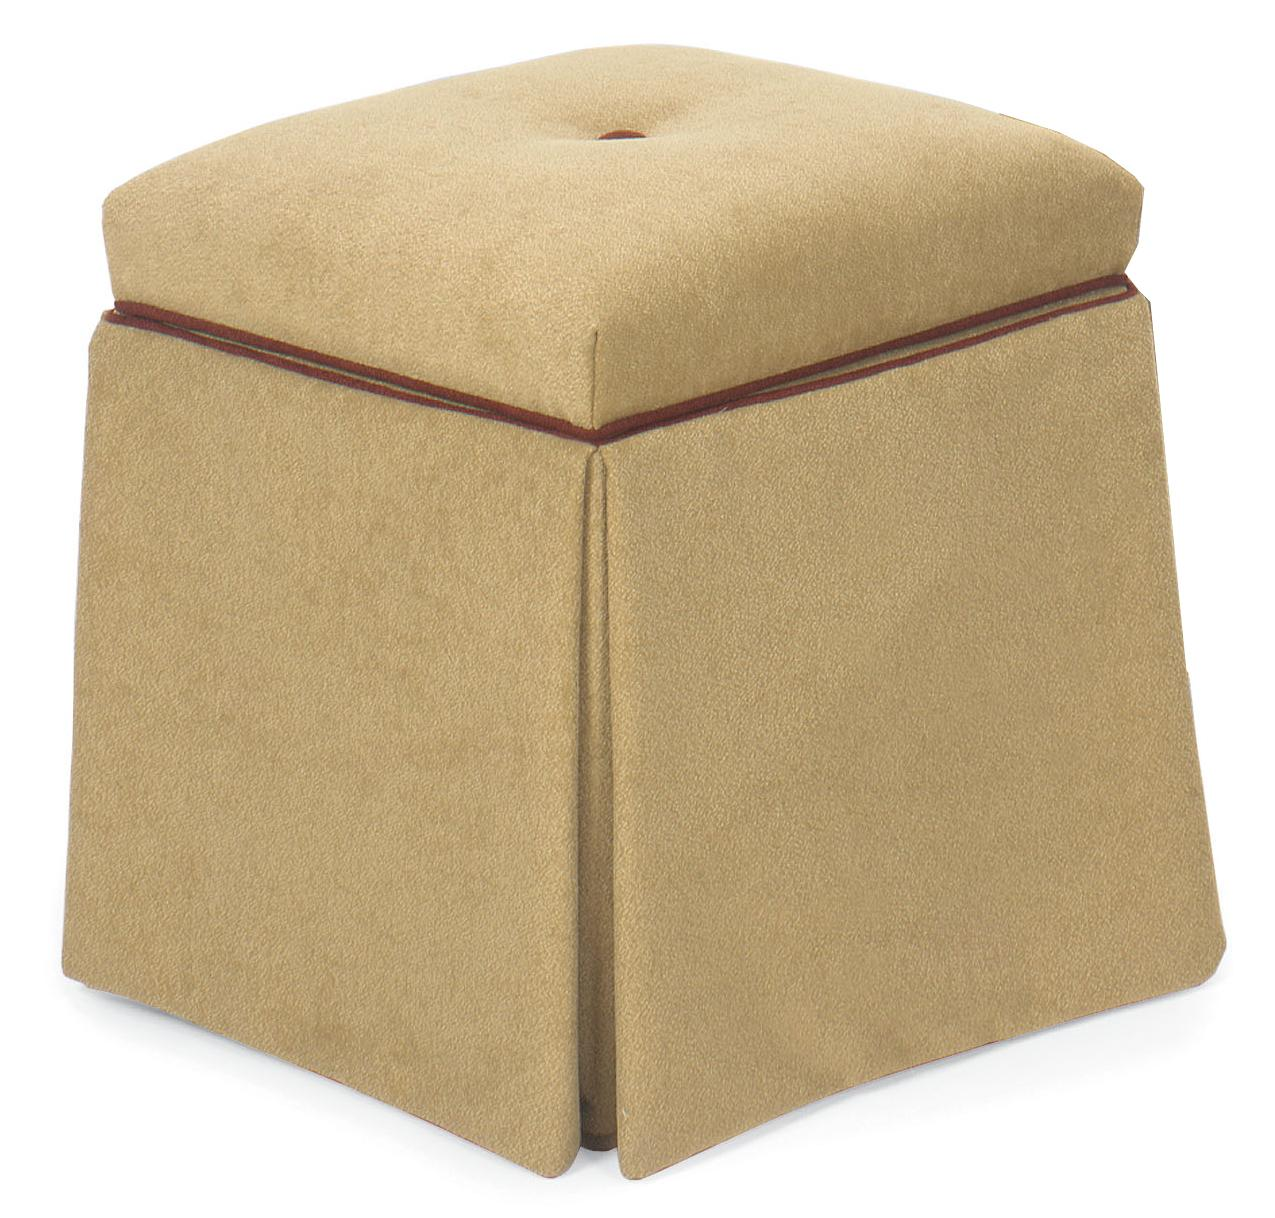 Fairfield Ottomans Storage Ottoman - Item Number: 1673-22